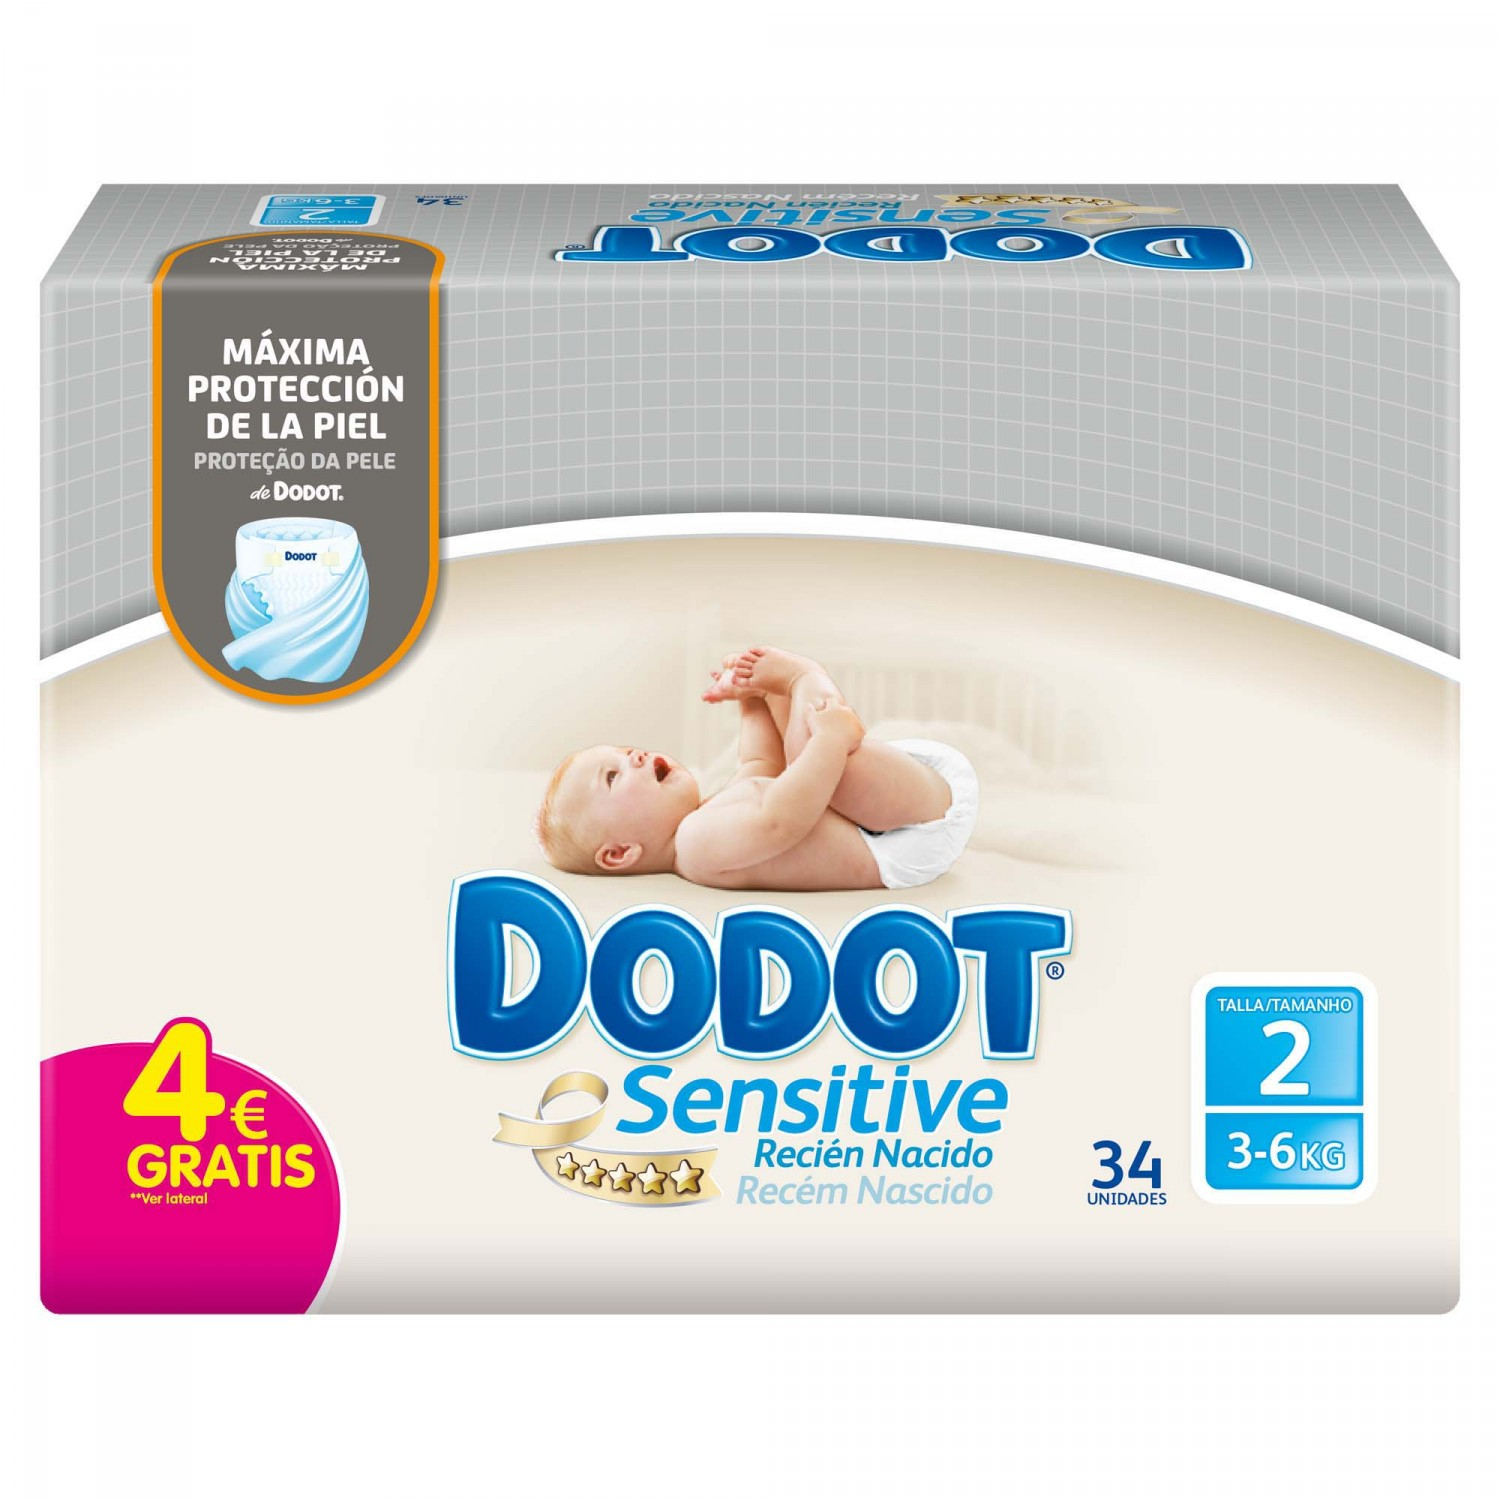 Dodot Sensitive pañal recien nacido talla 2 sensitive 34